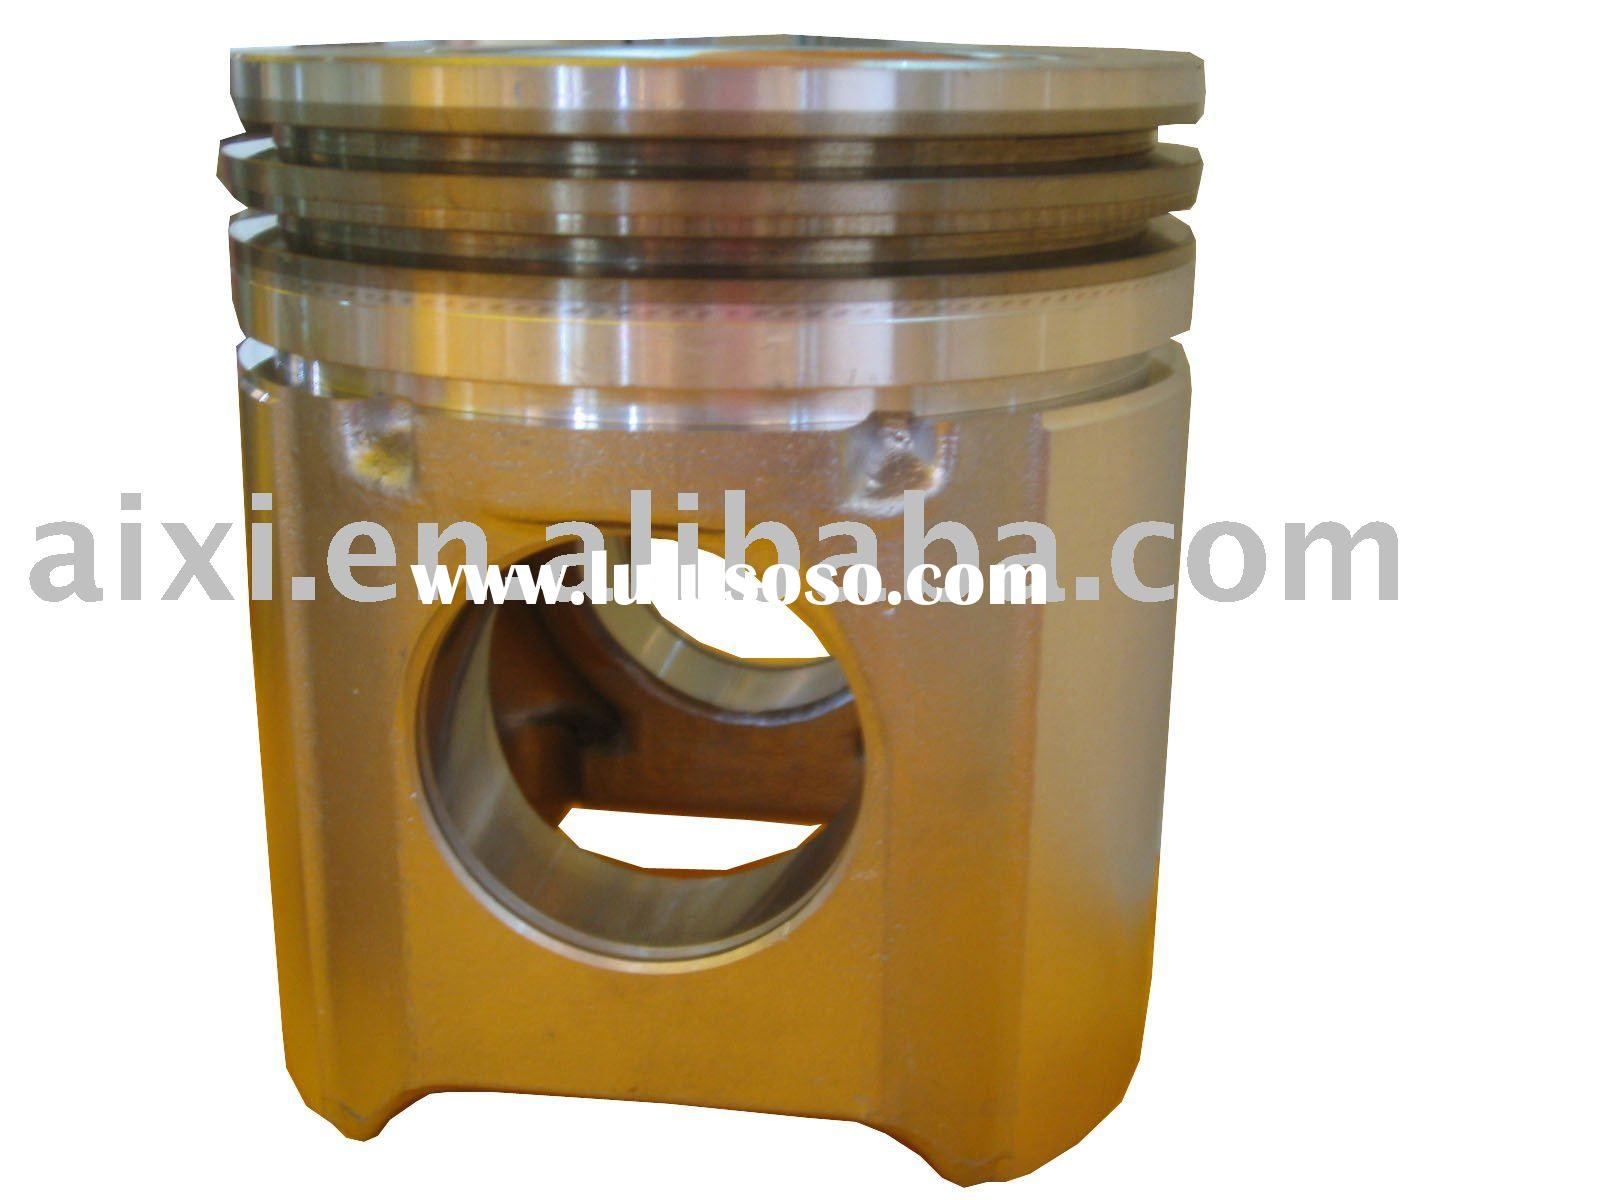 Engine piston for John deere tractor